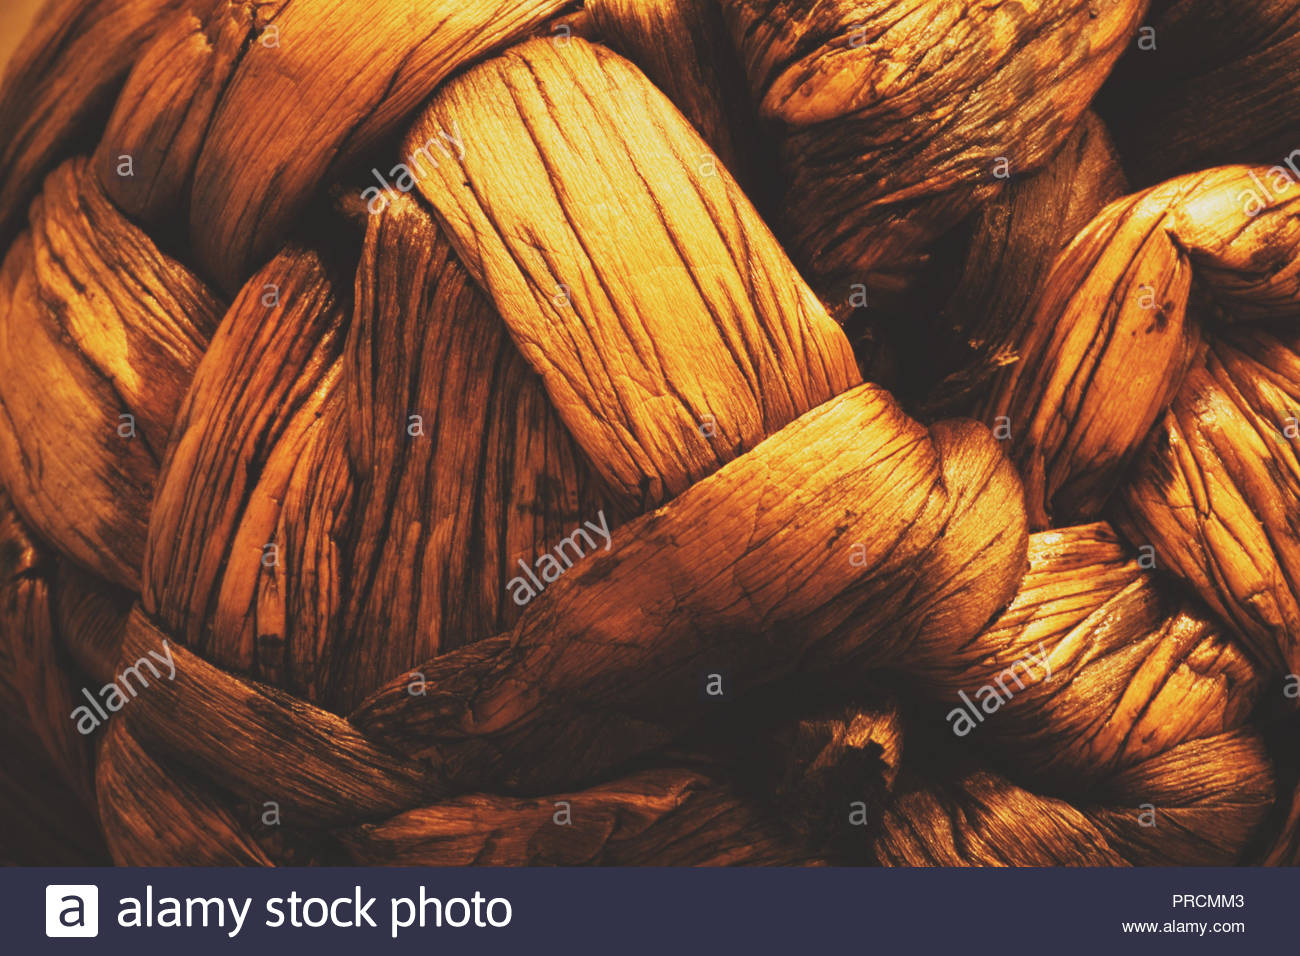 Ball of woven, dried and stained banana leaf closeup as abstract background. - Stock Image